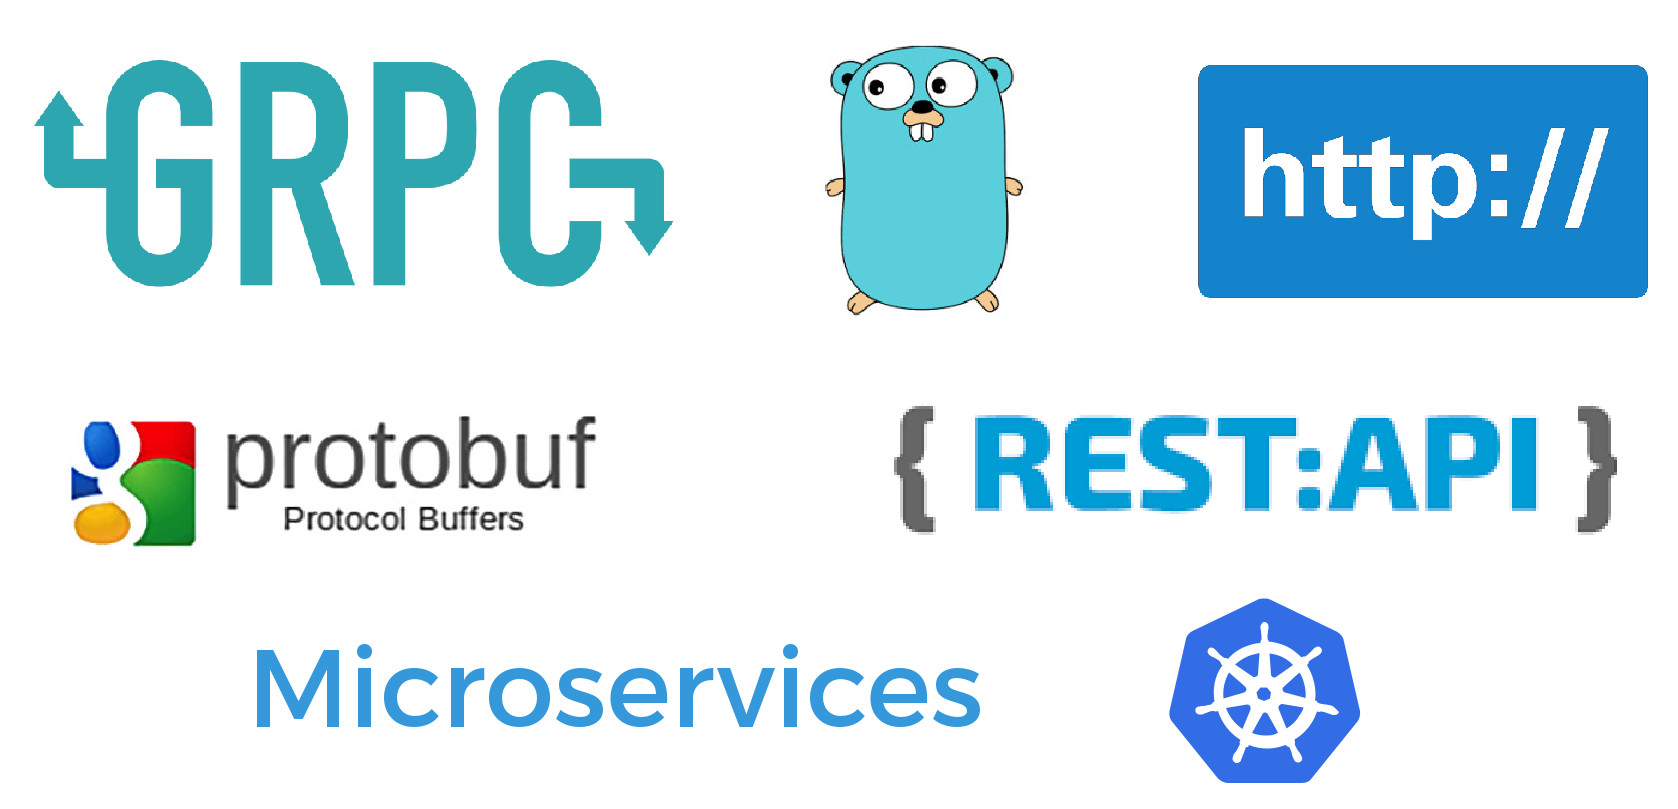 Tutorial, Part 1] How to develop Go gRPC microservice with